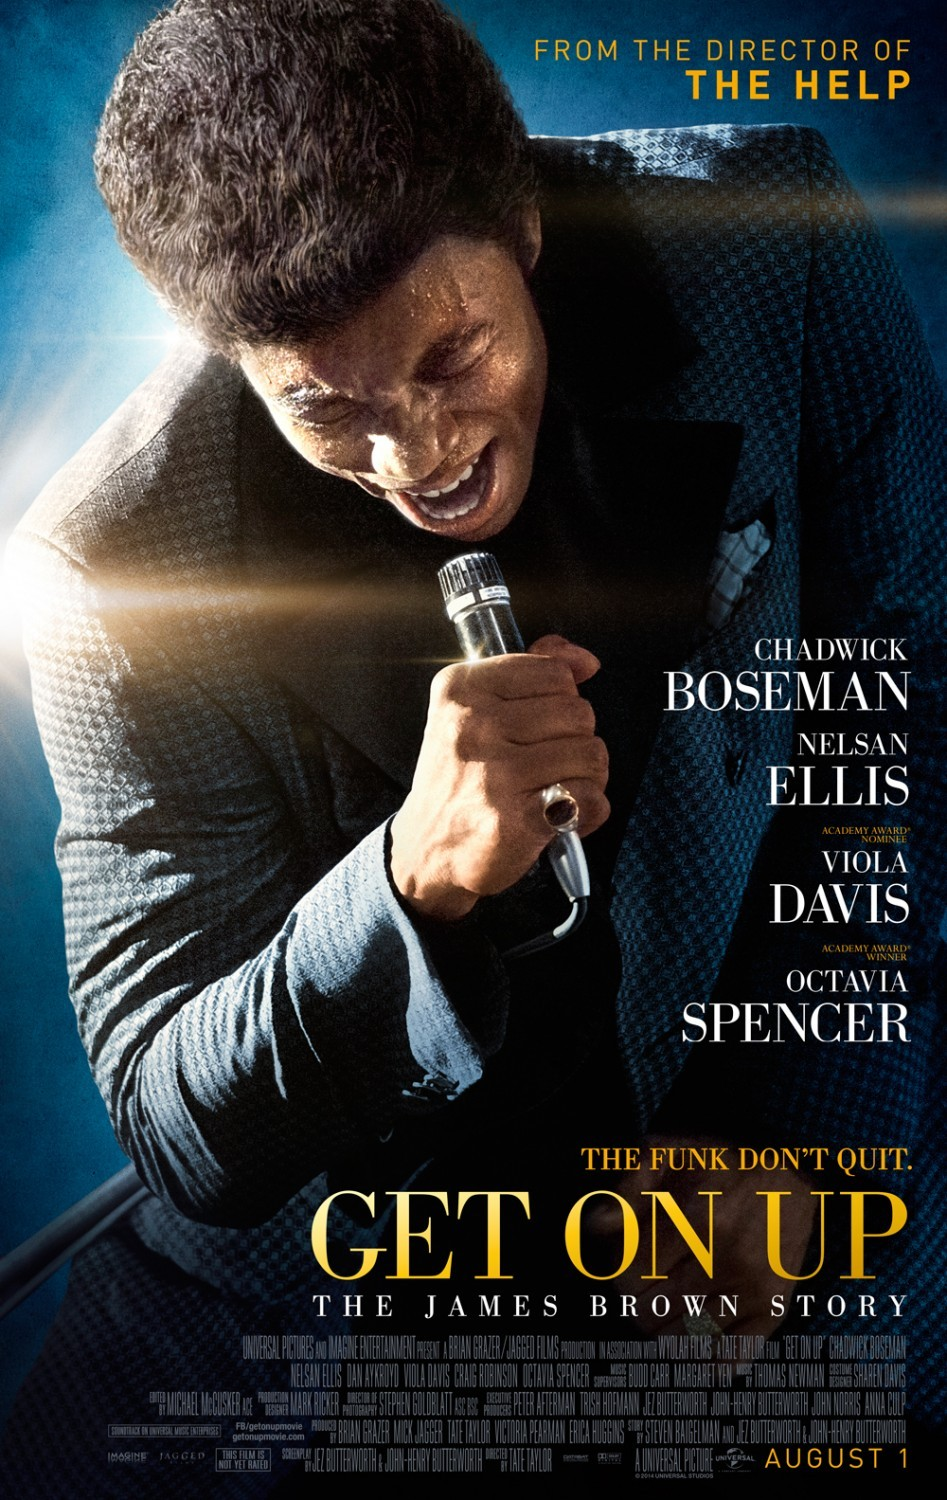 """Get On Up (2014)  A chronicle of James Brown'srise from extreme poverty to become one of the most influential musicians in history.  I absolutely LOVED this film. Why don't they make goodmusic like this anymore? I love funk and soul and James Brown was the man. It was entertaining to see most of the cast of 'The Help' in the movie :) I also think that Chadwick Boseman is absolutely dashing. He has such a beautiful smile and quite a screen presence. He also really impressed me '42'. Last week I read an article, can't remember where, about finding the """"next Denzel Washington"""". Well Hollywood, your next Denzel Washington is right here in Chadwick Boseman. He is very talented and I hope he gets an Oscar nomination/win for this. Do check it out!"""